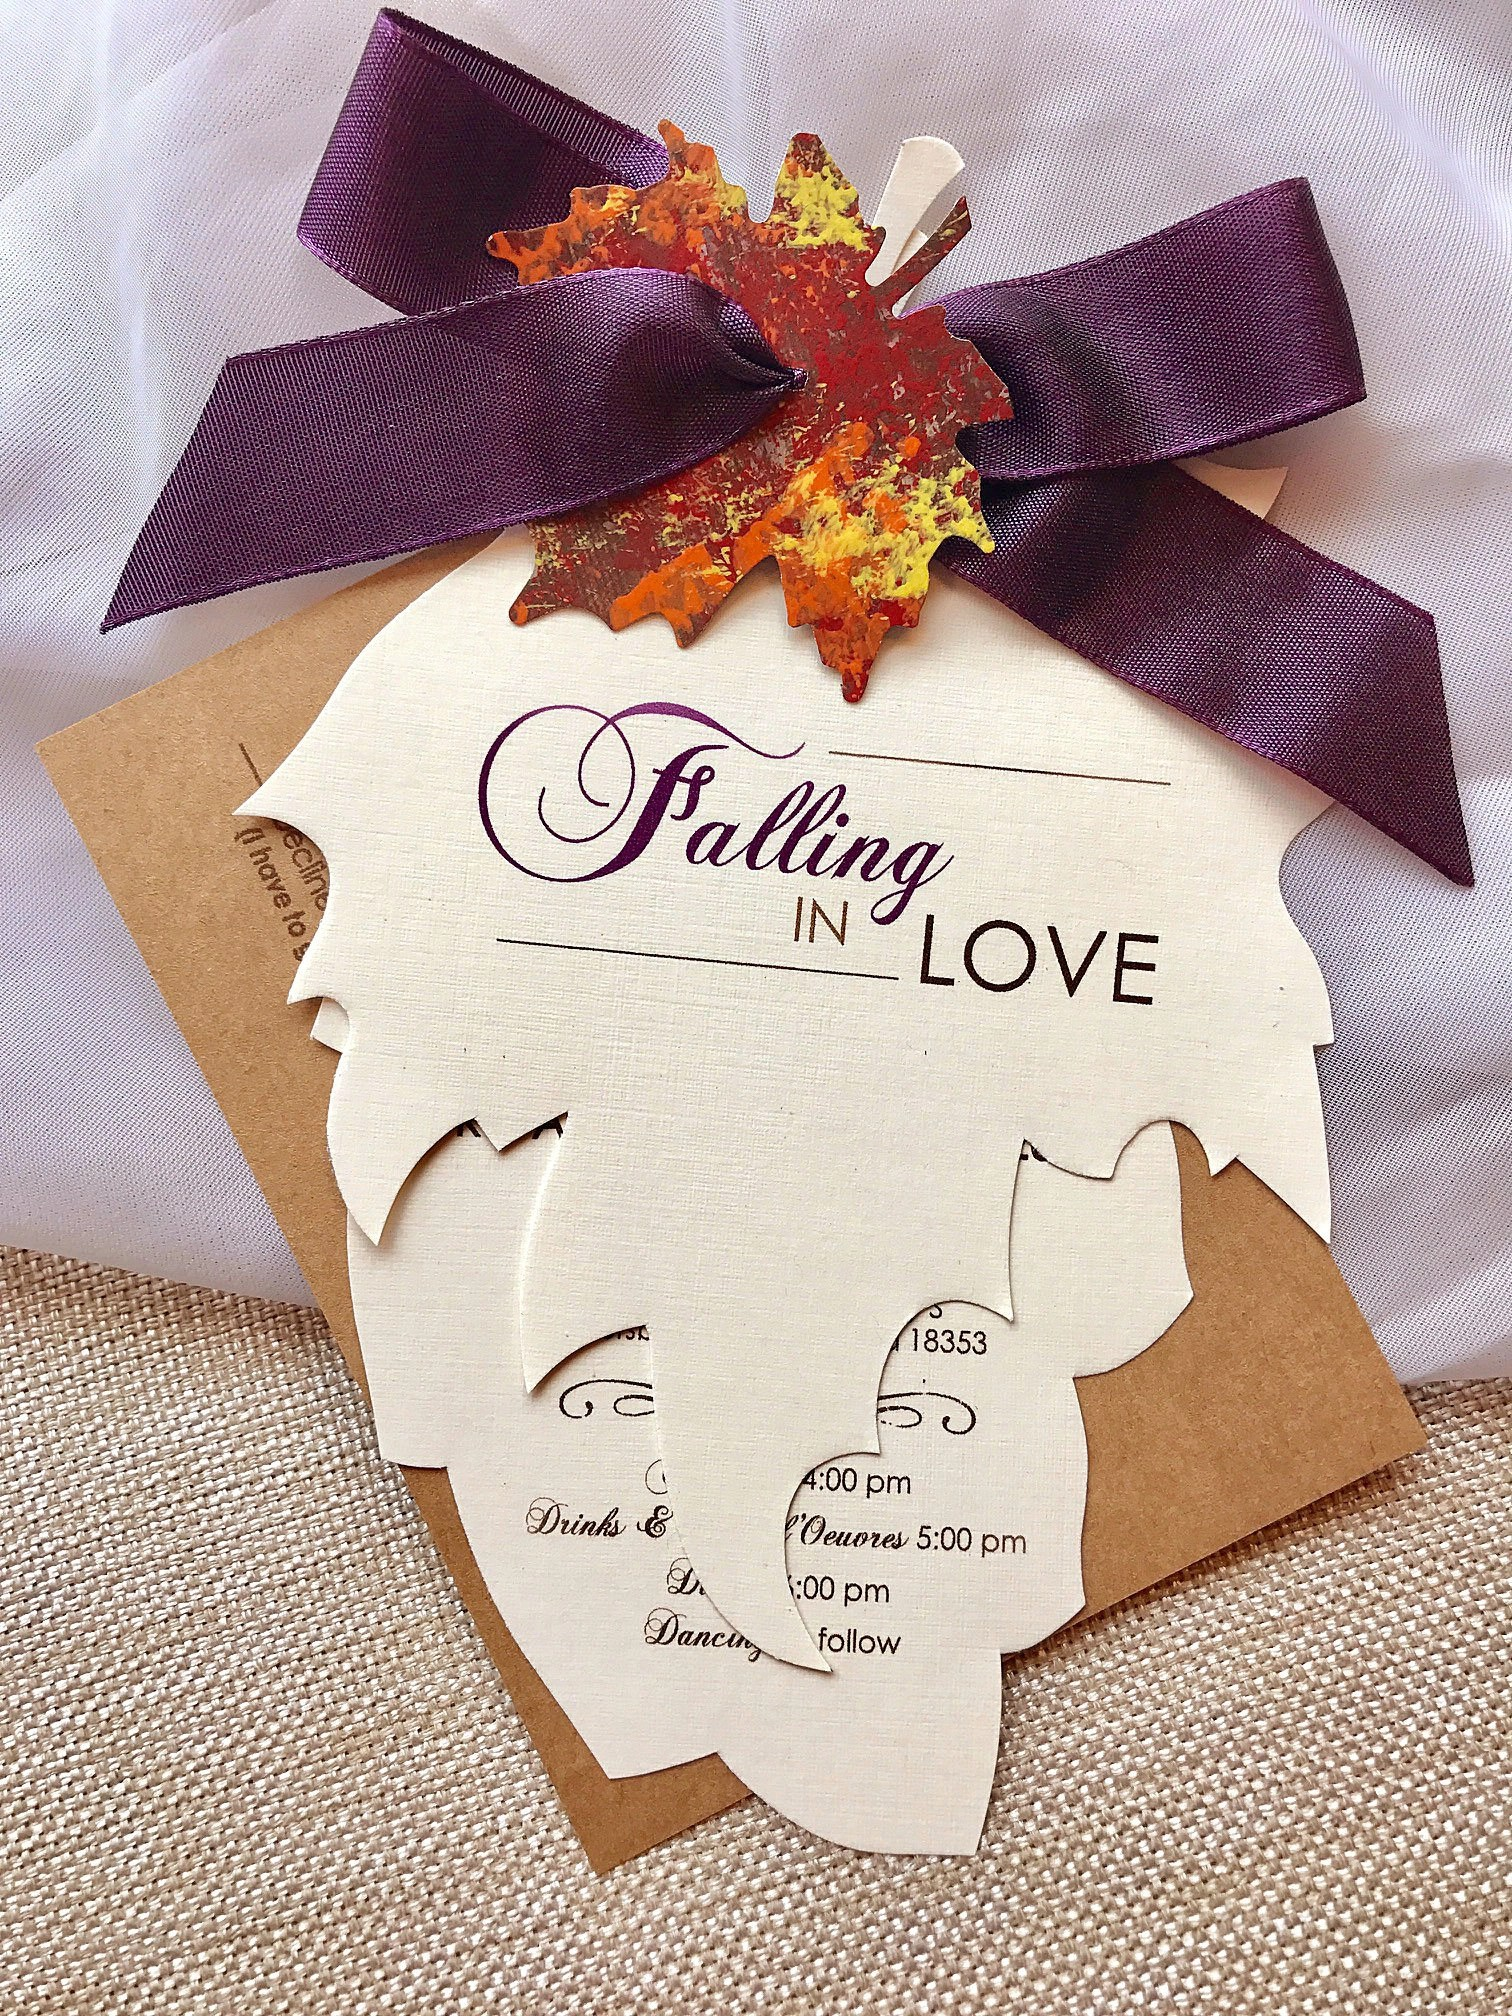 Relieving Examples Ai Fall Wedding Invitations Free Fall Wedding Invitations Diy Fall Leaf Cut Wedding Invitation Design Fall Wedding Invitation Designs wedding Fall Wedding Invitations